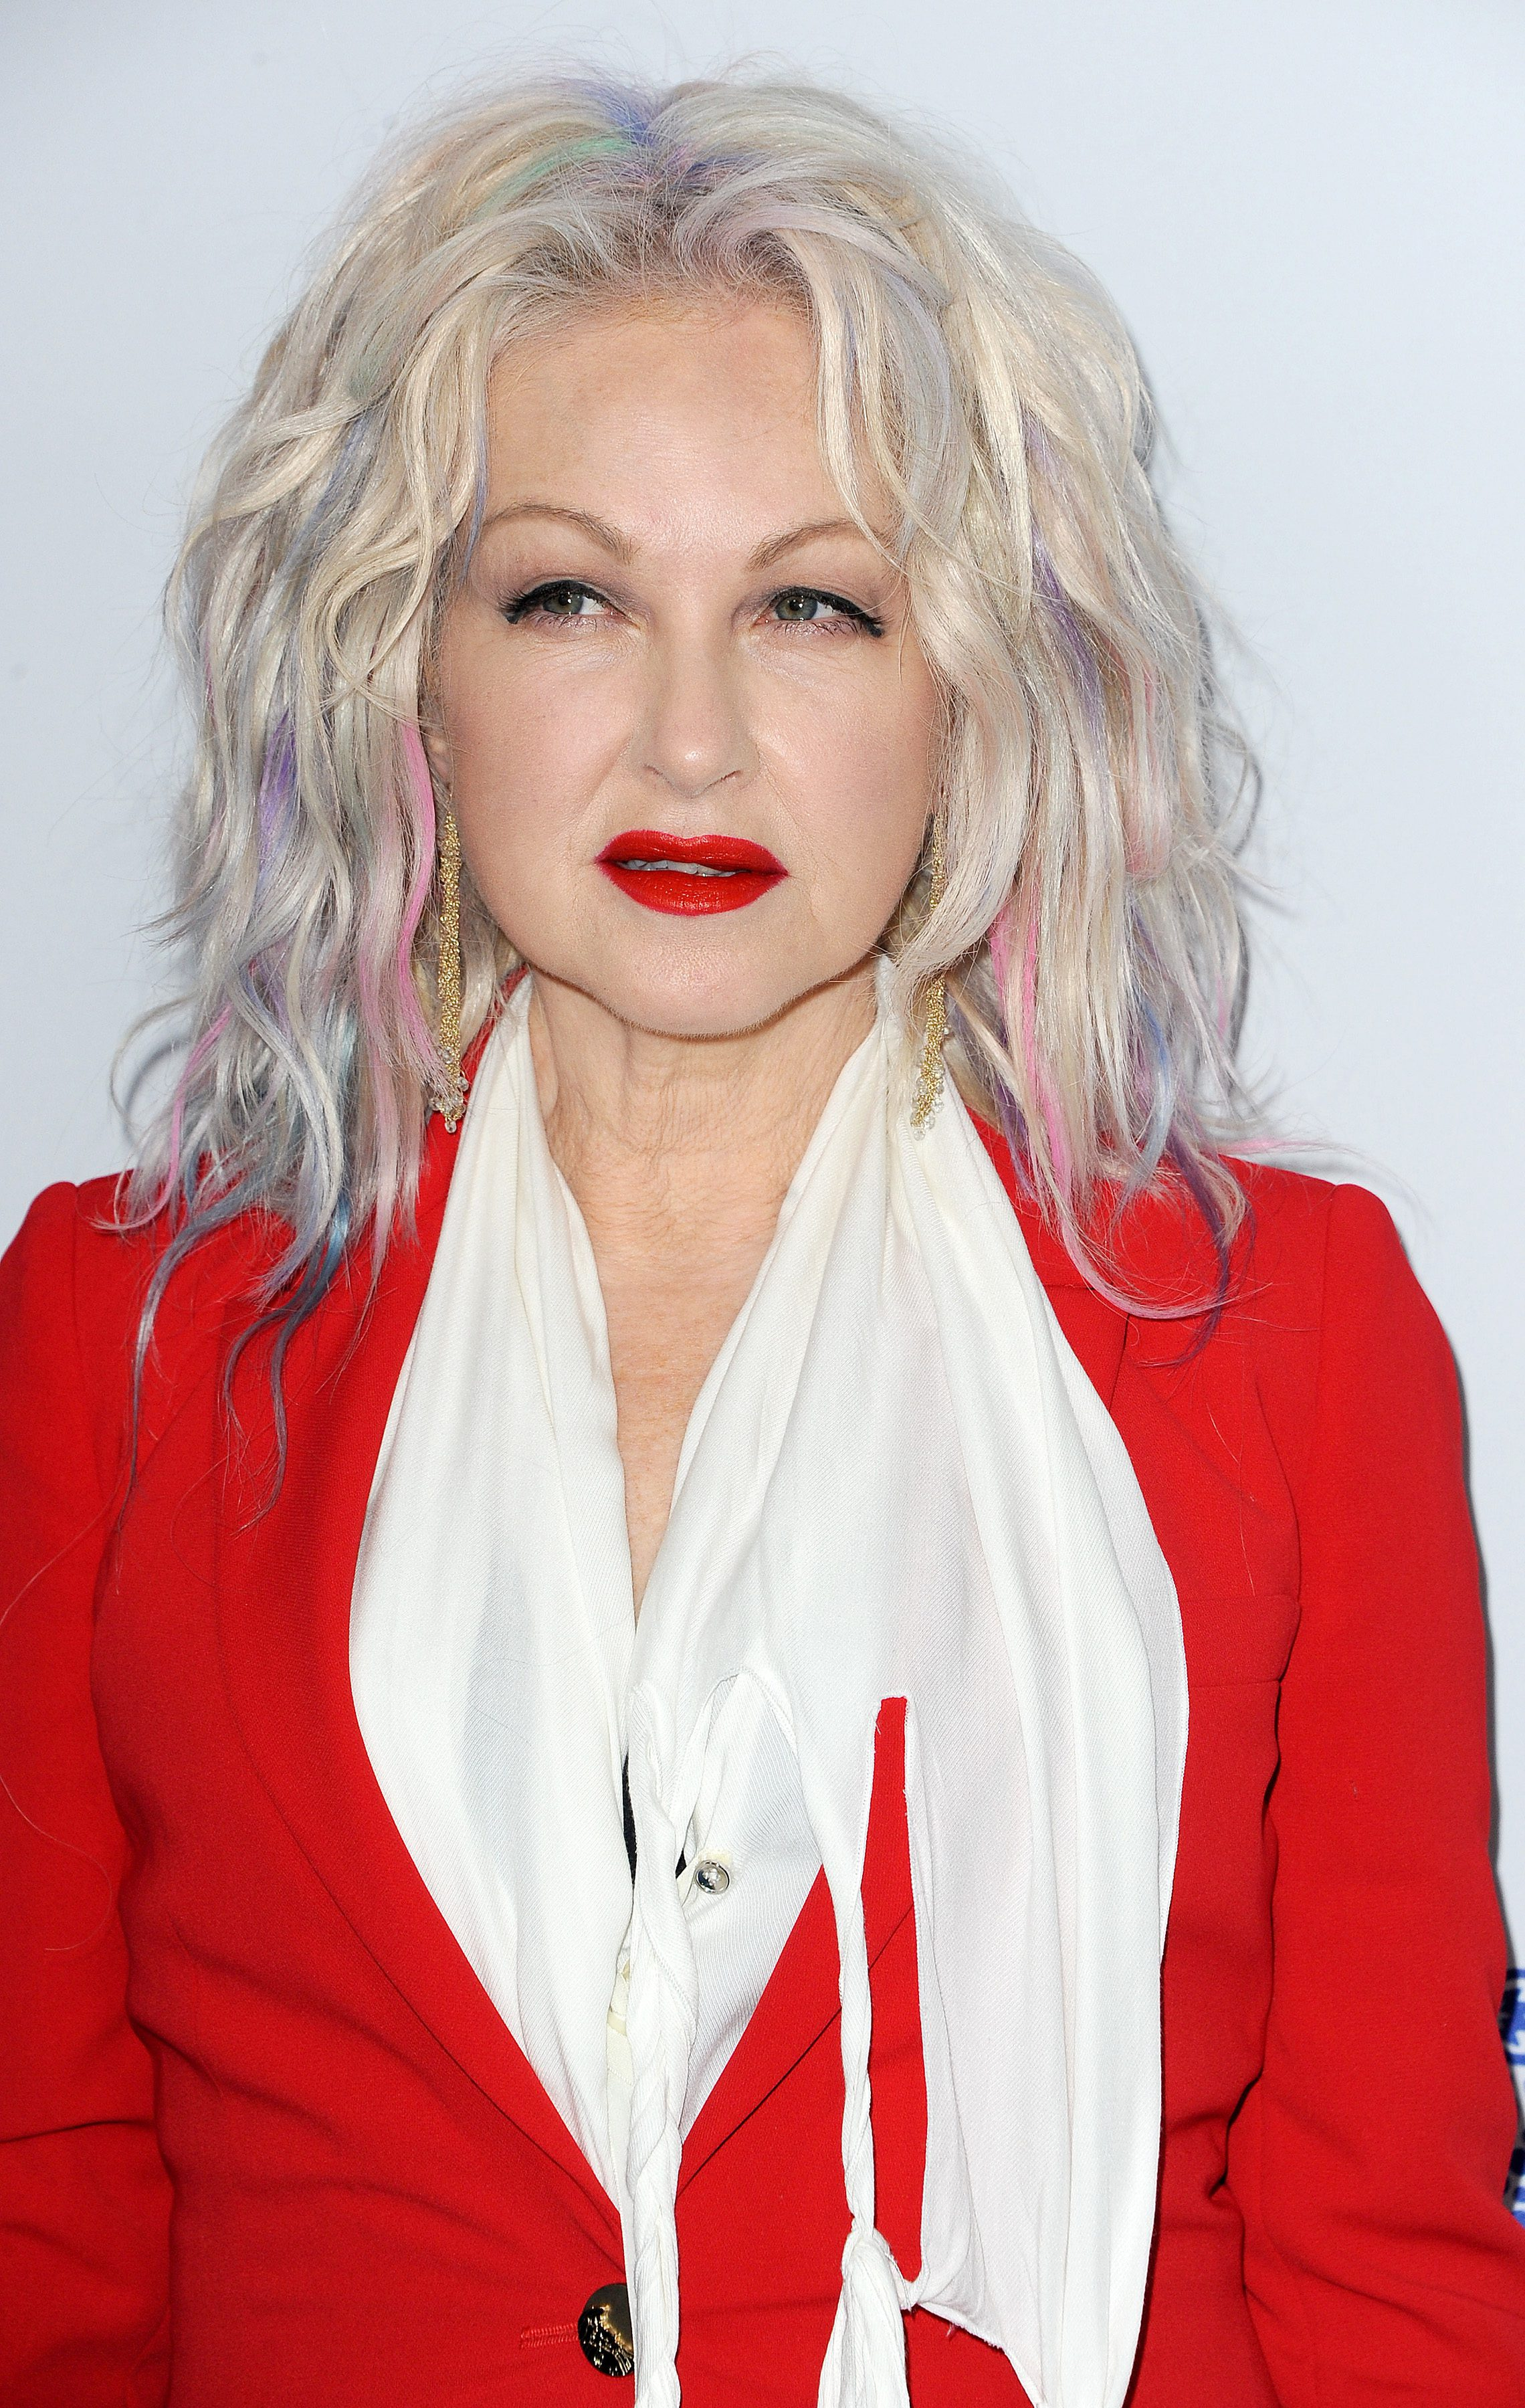 Cyndi Lauper's Silver Hair with Pastel Highlights